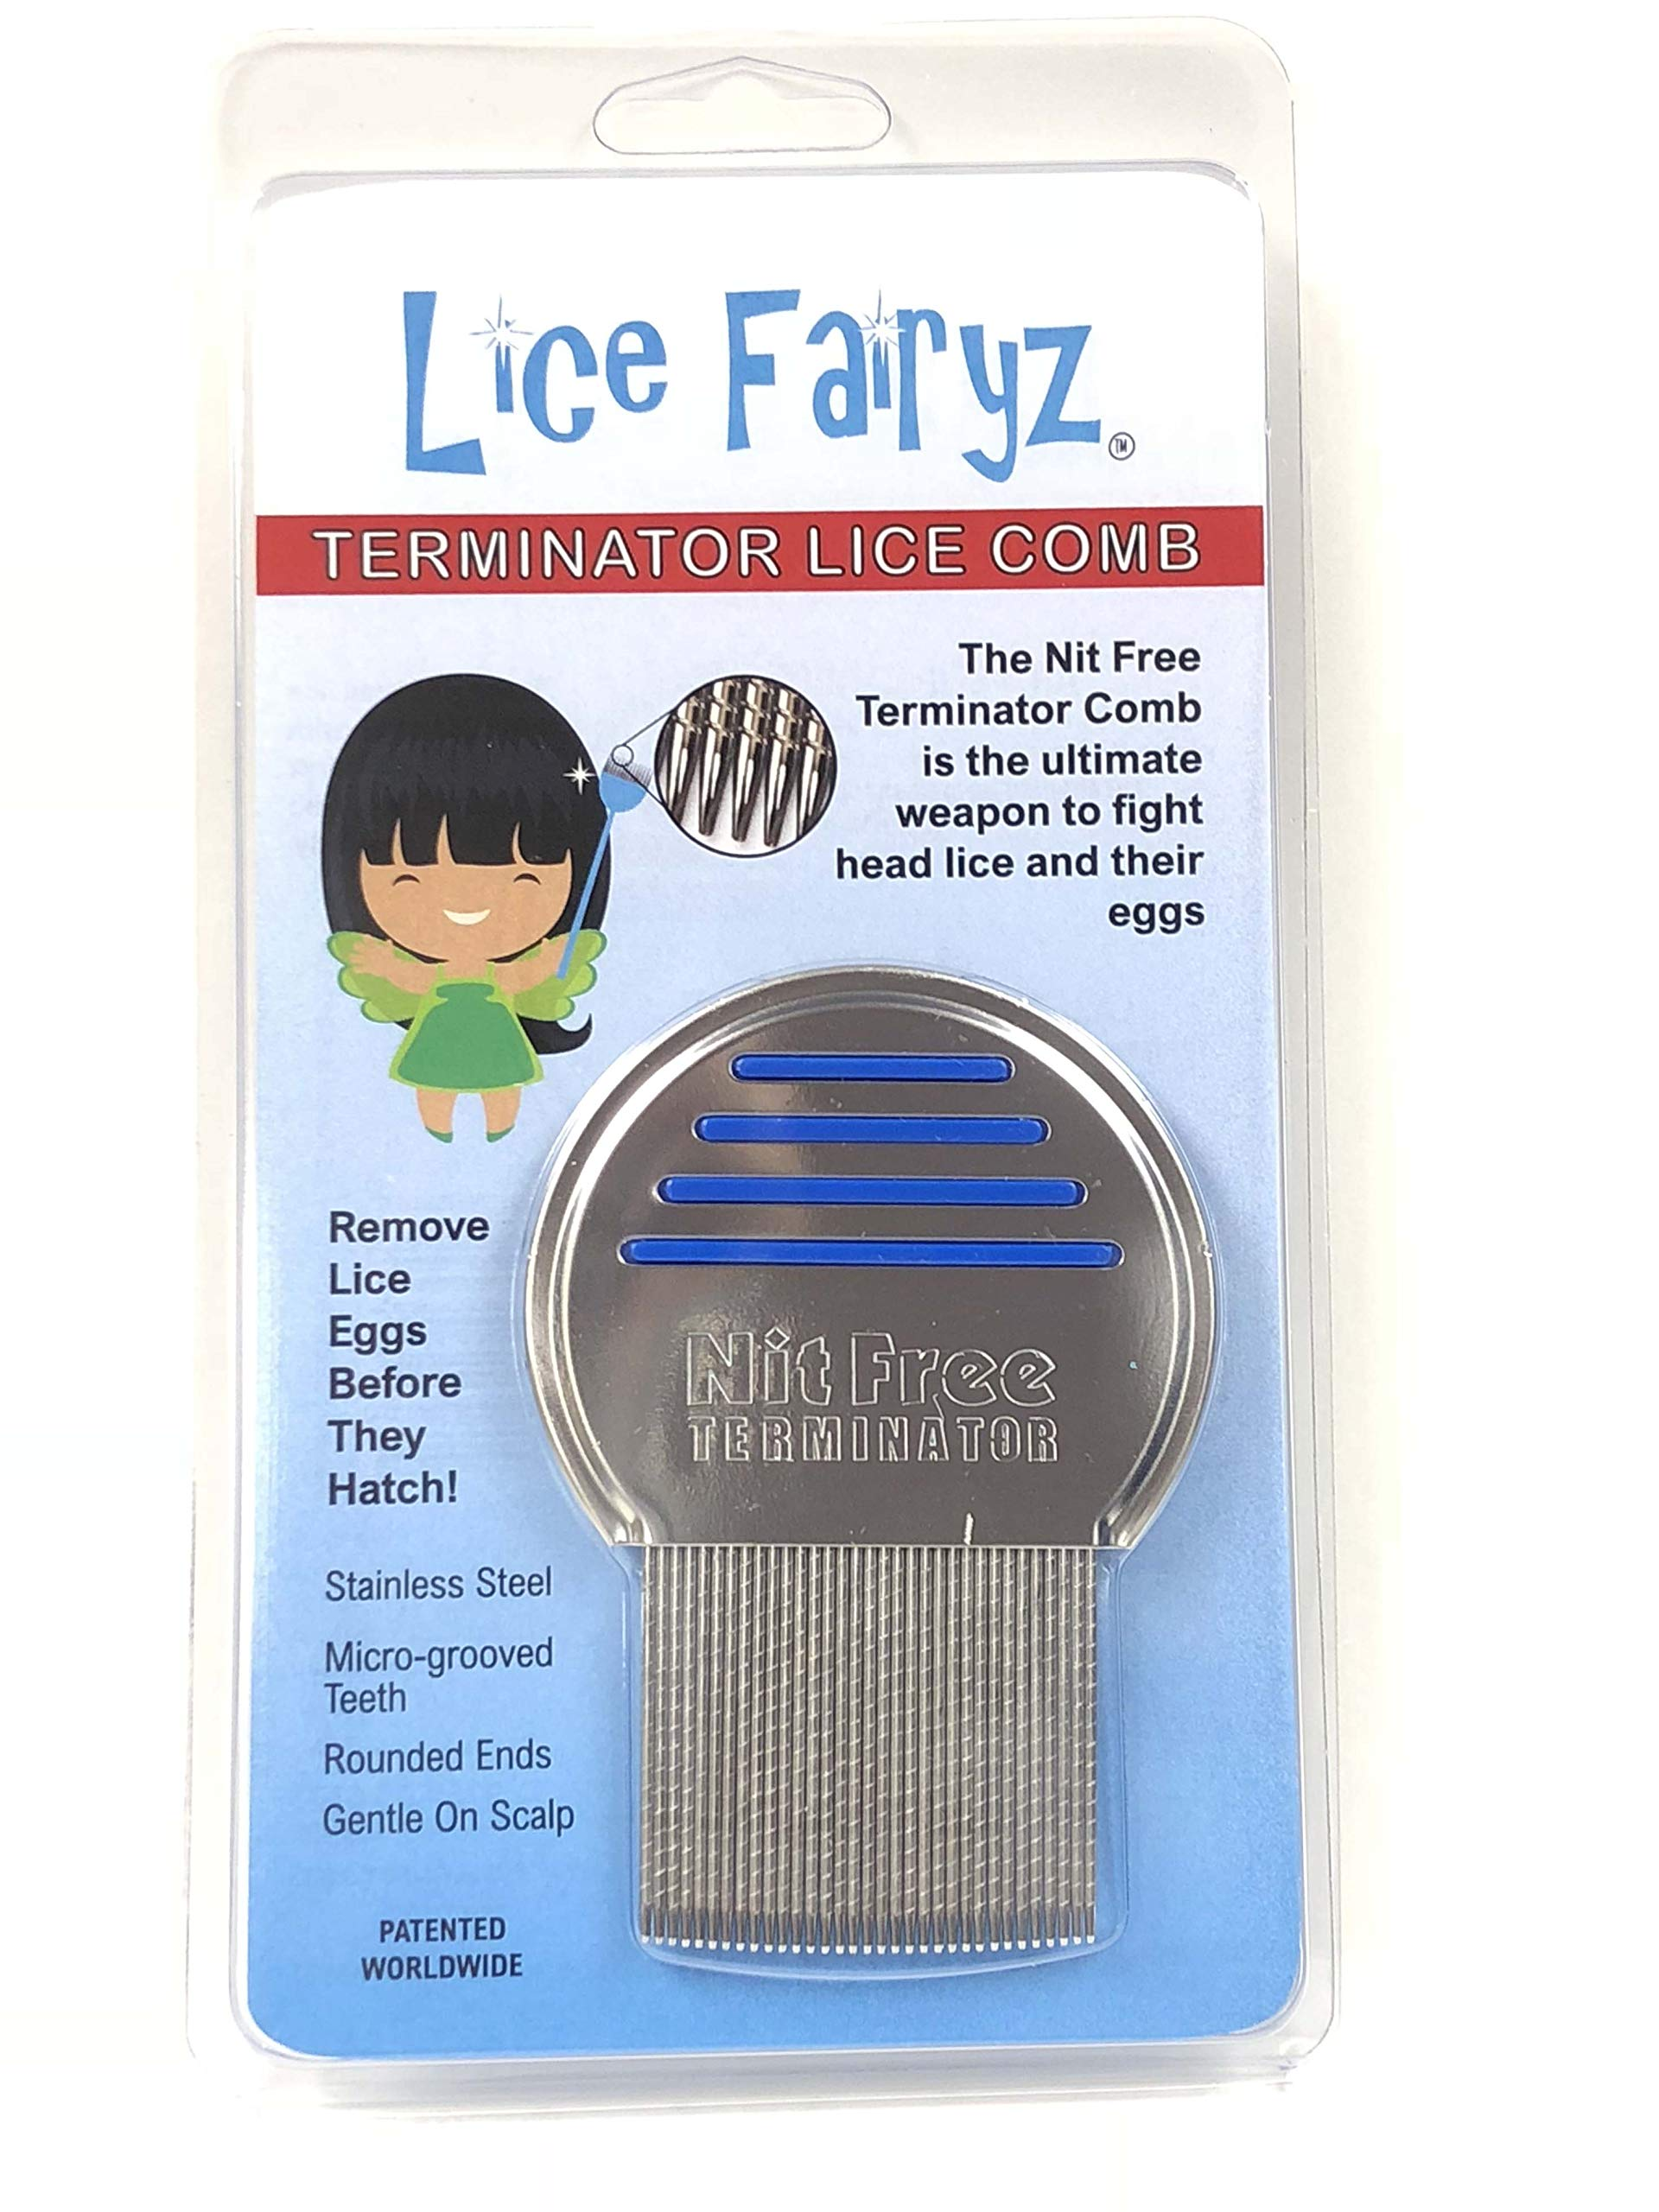 Lice Fairyz Professional Terminator Lice Comb Most Effective Comb to Naturally Treat Head Lice Easily Removes Lice & Lice Eggs with Highest Quality Grooved Stainless-Steel Teeth - 2 or 8 Pack